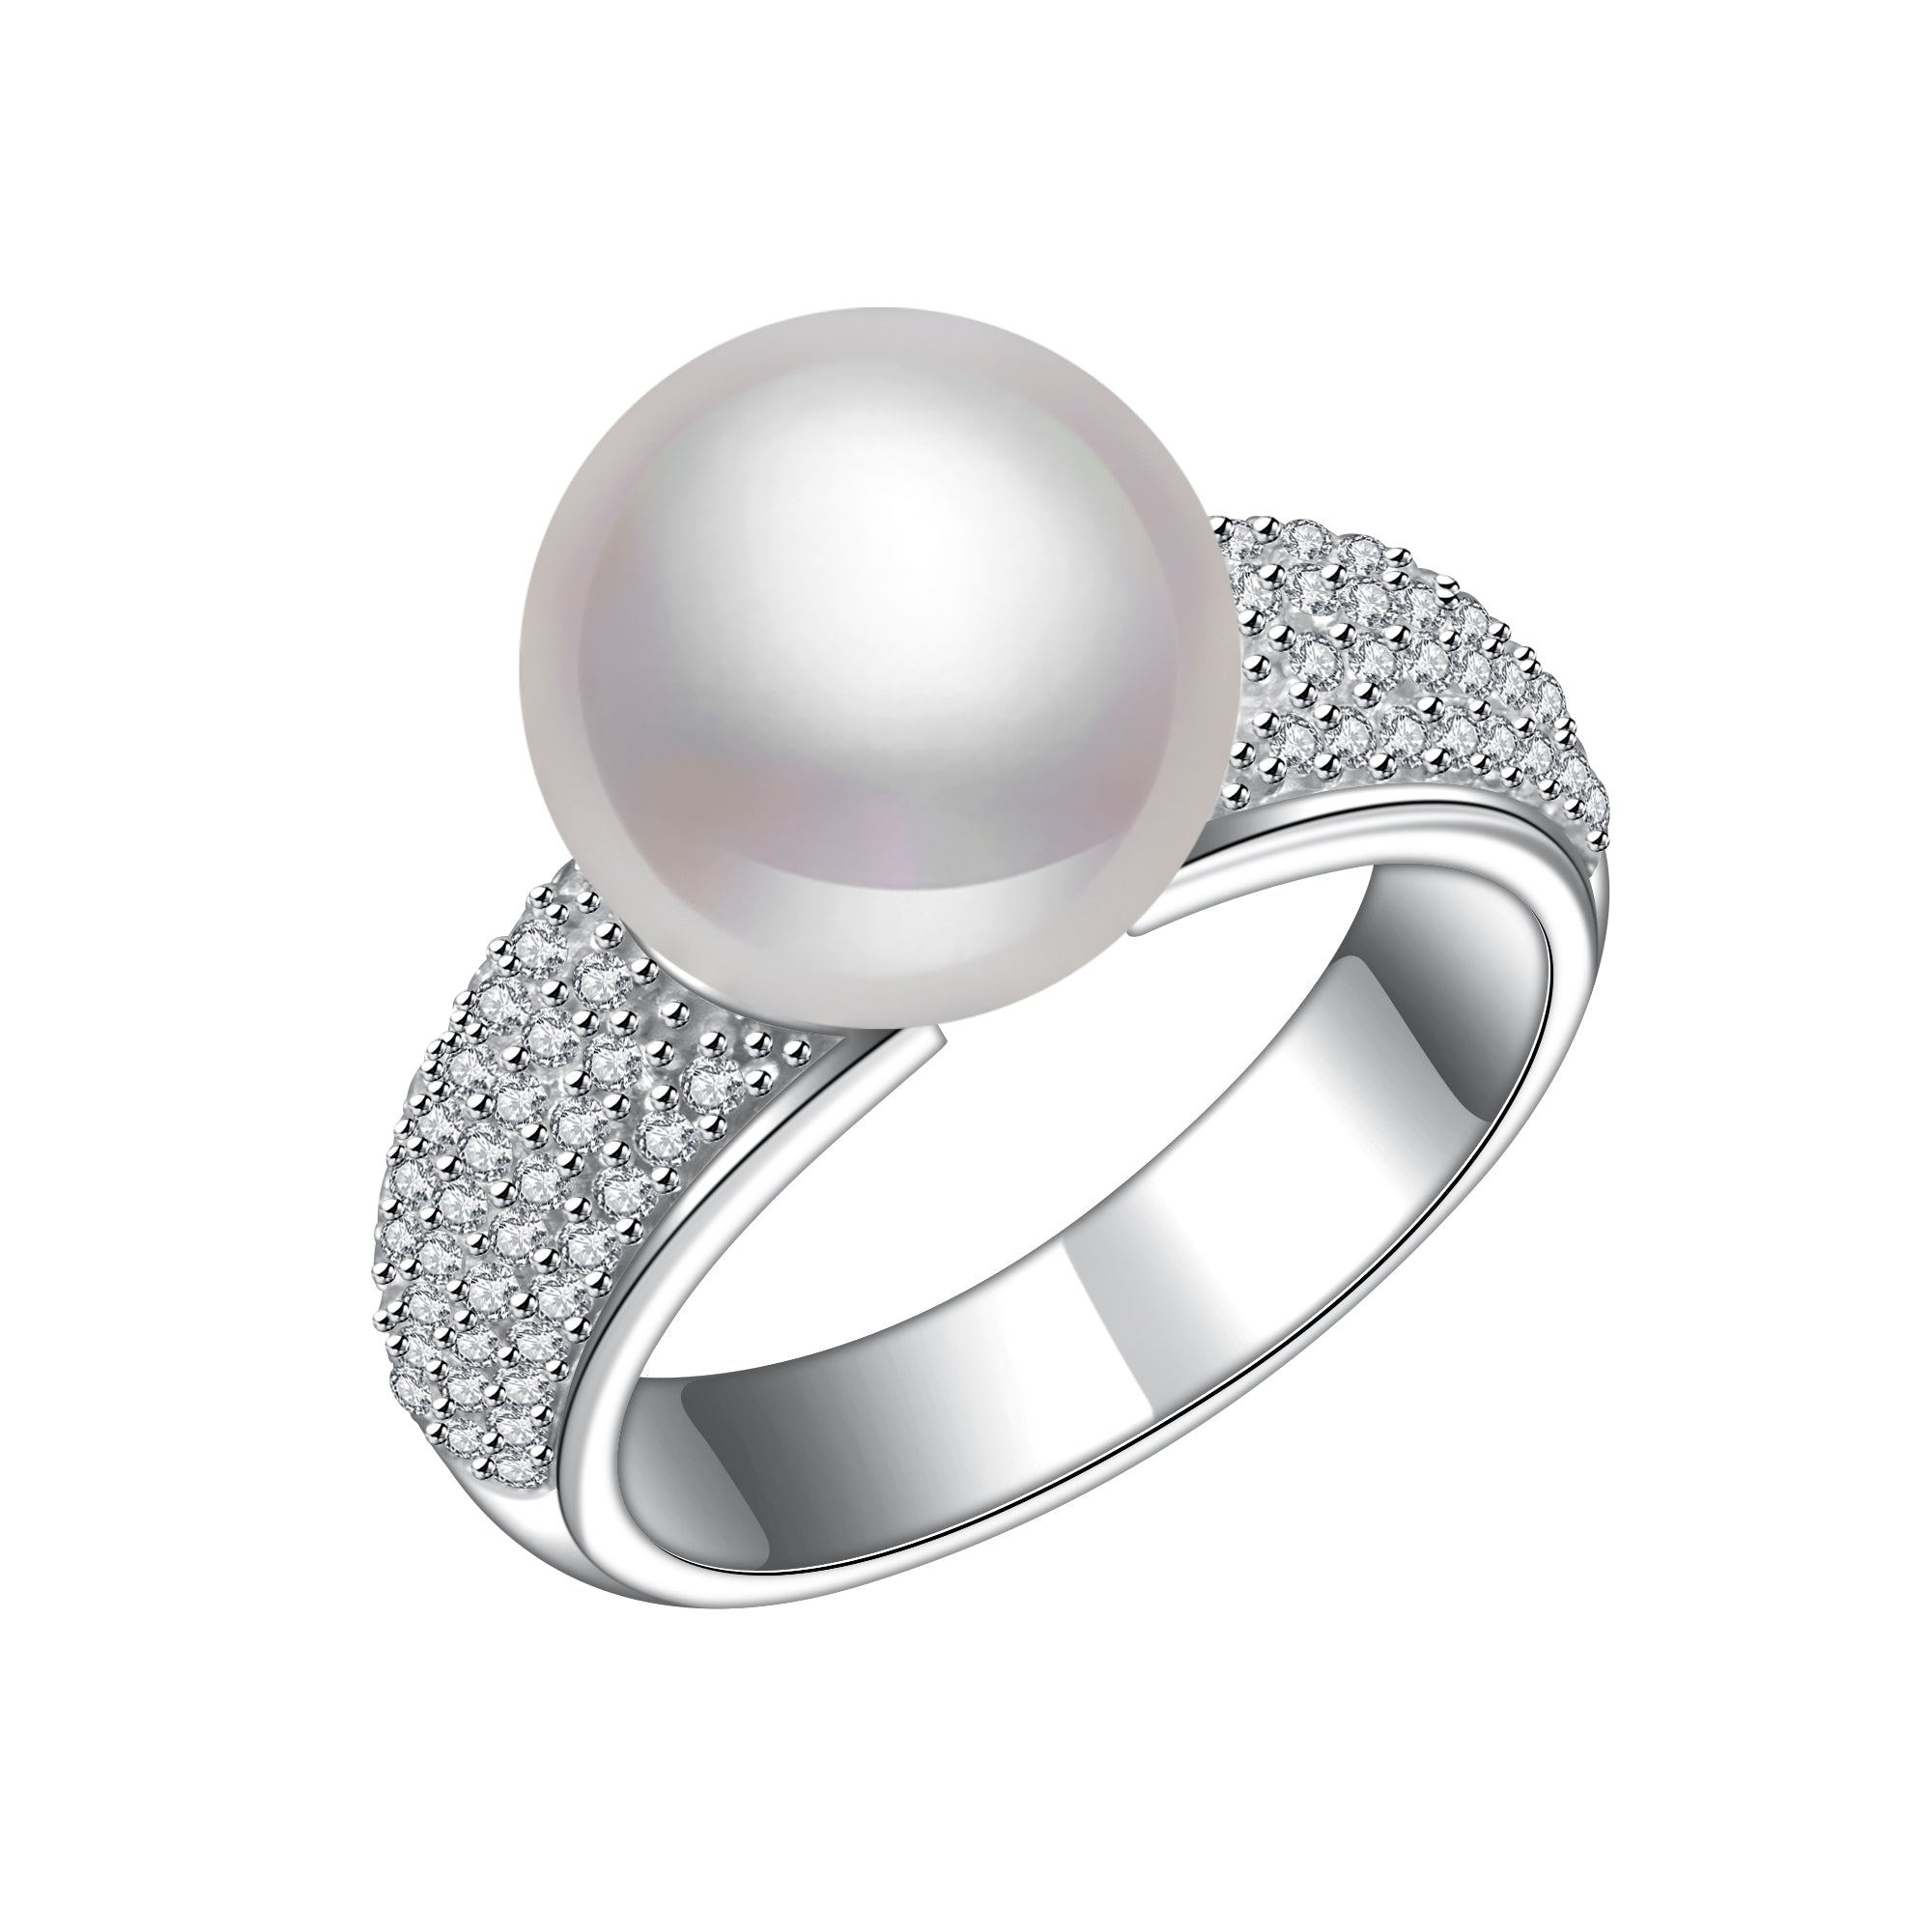 rings national engagement ring south white sea pearl serenity diamond